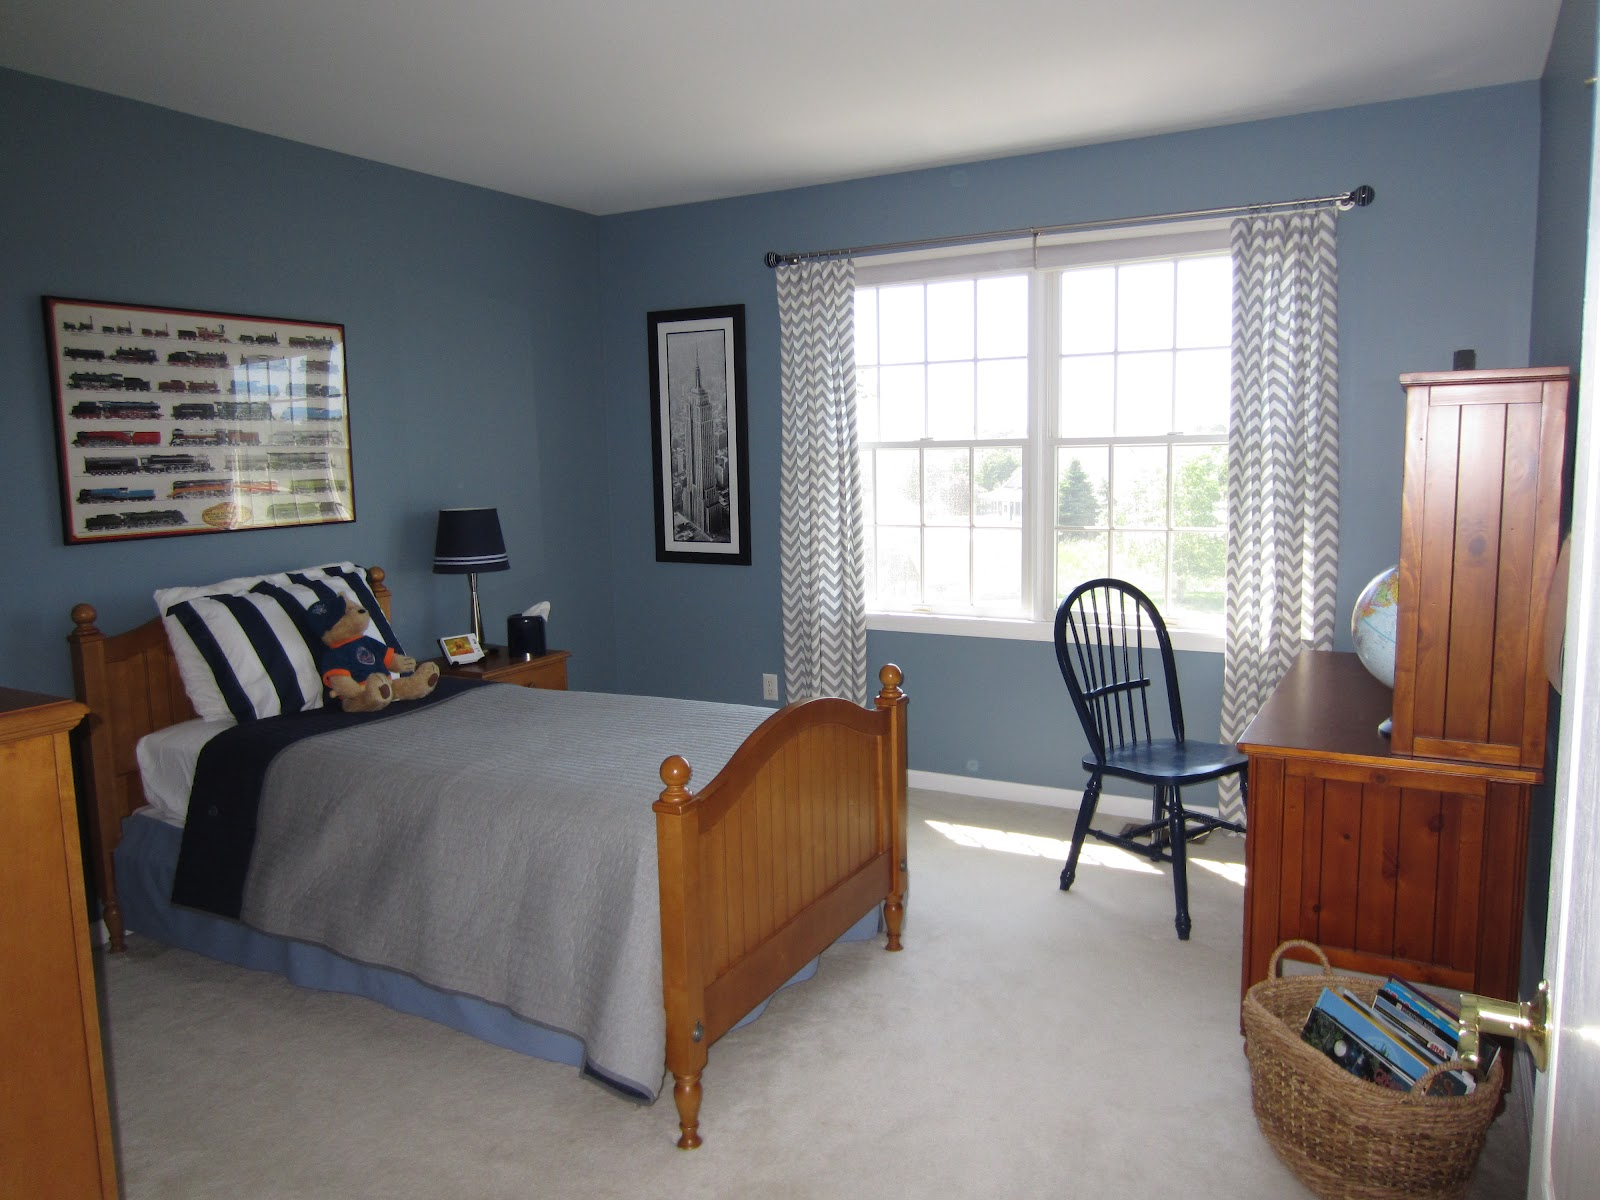 Awesome Bedroom Paint Color Ideas For Kids Rooms Bedrooms Painting Cool Black Colors Blue Gray Elegant Modern Country Romantic Warm Apppie Org